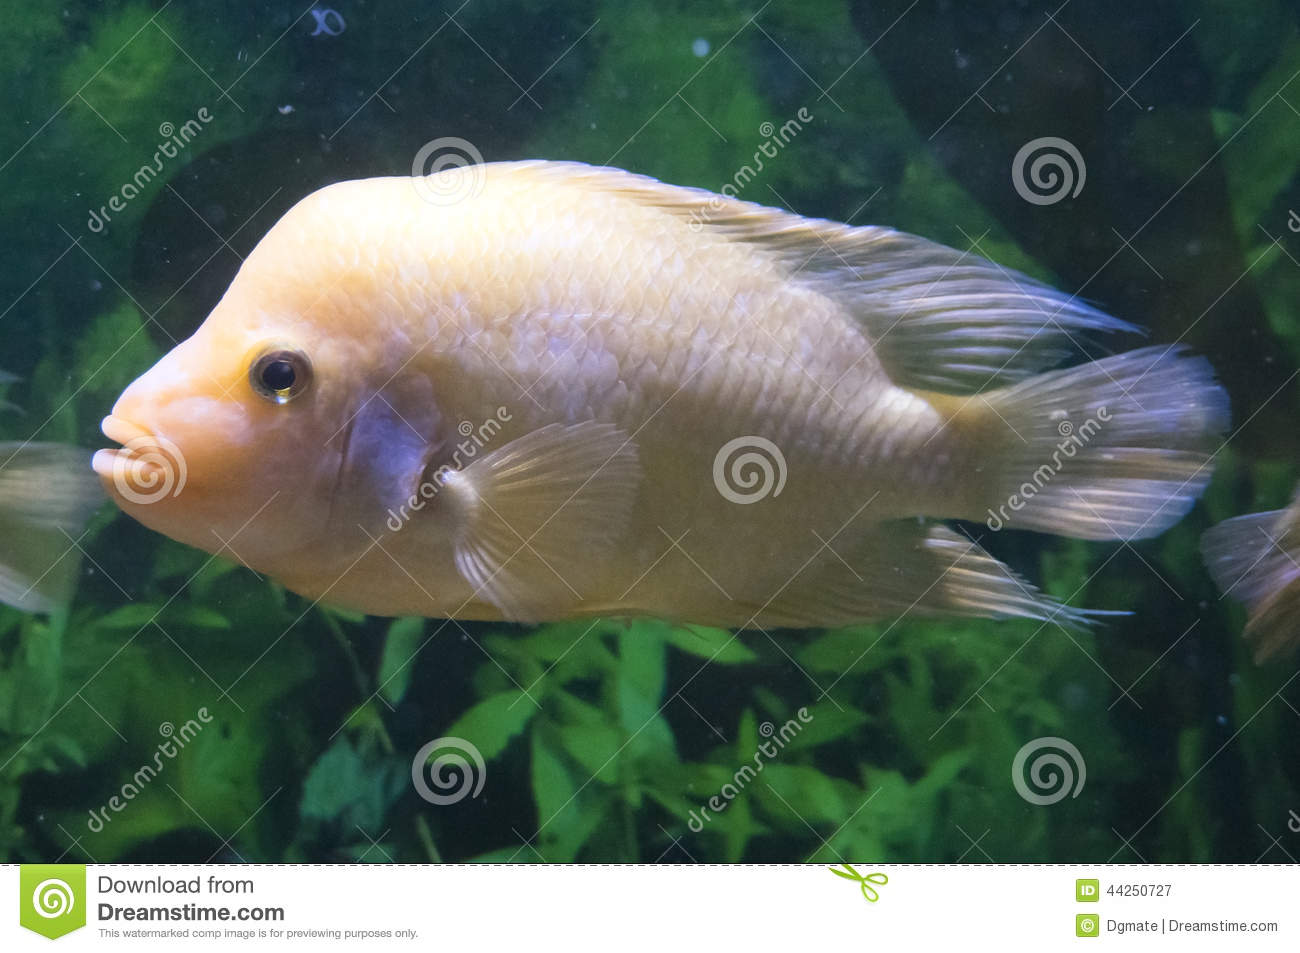 Albino flower horn fish stock photo image 44250727 for Flower horn fish price